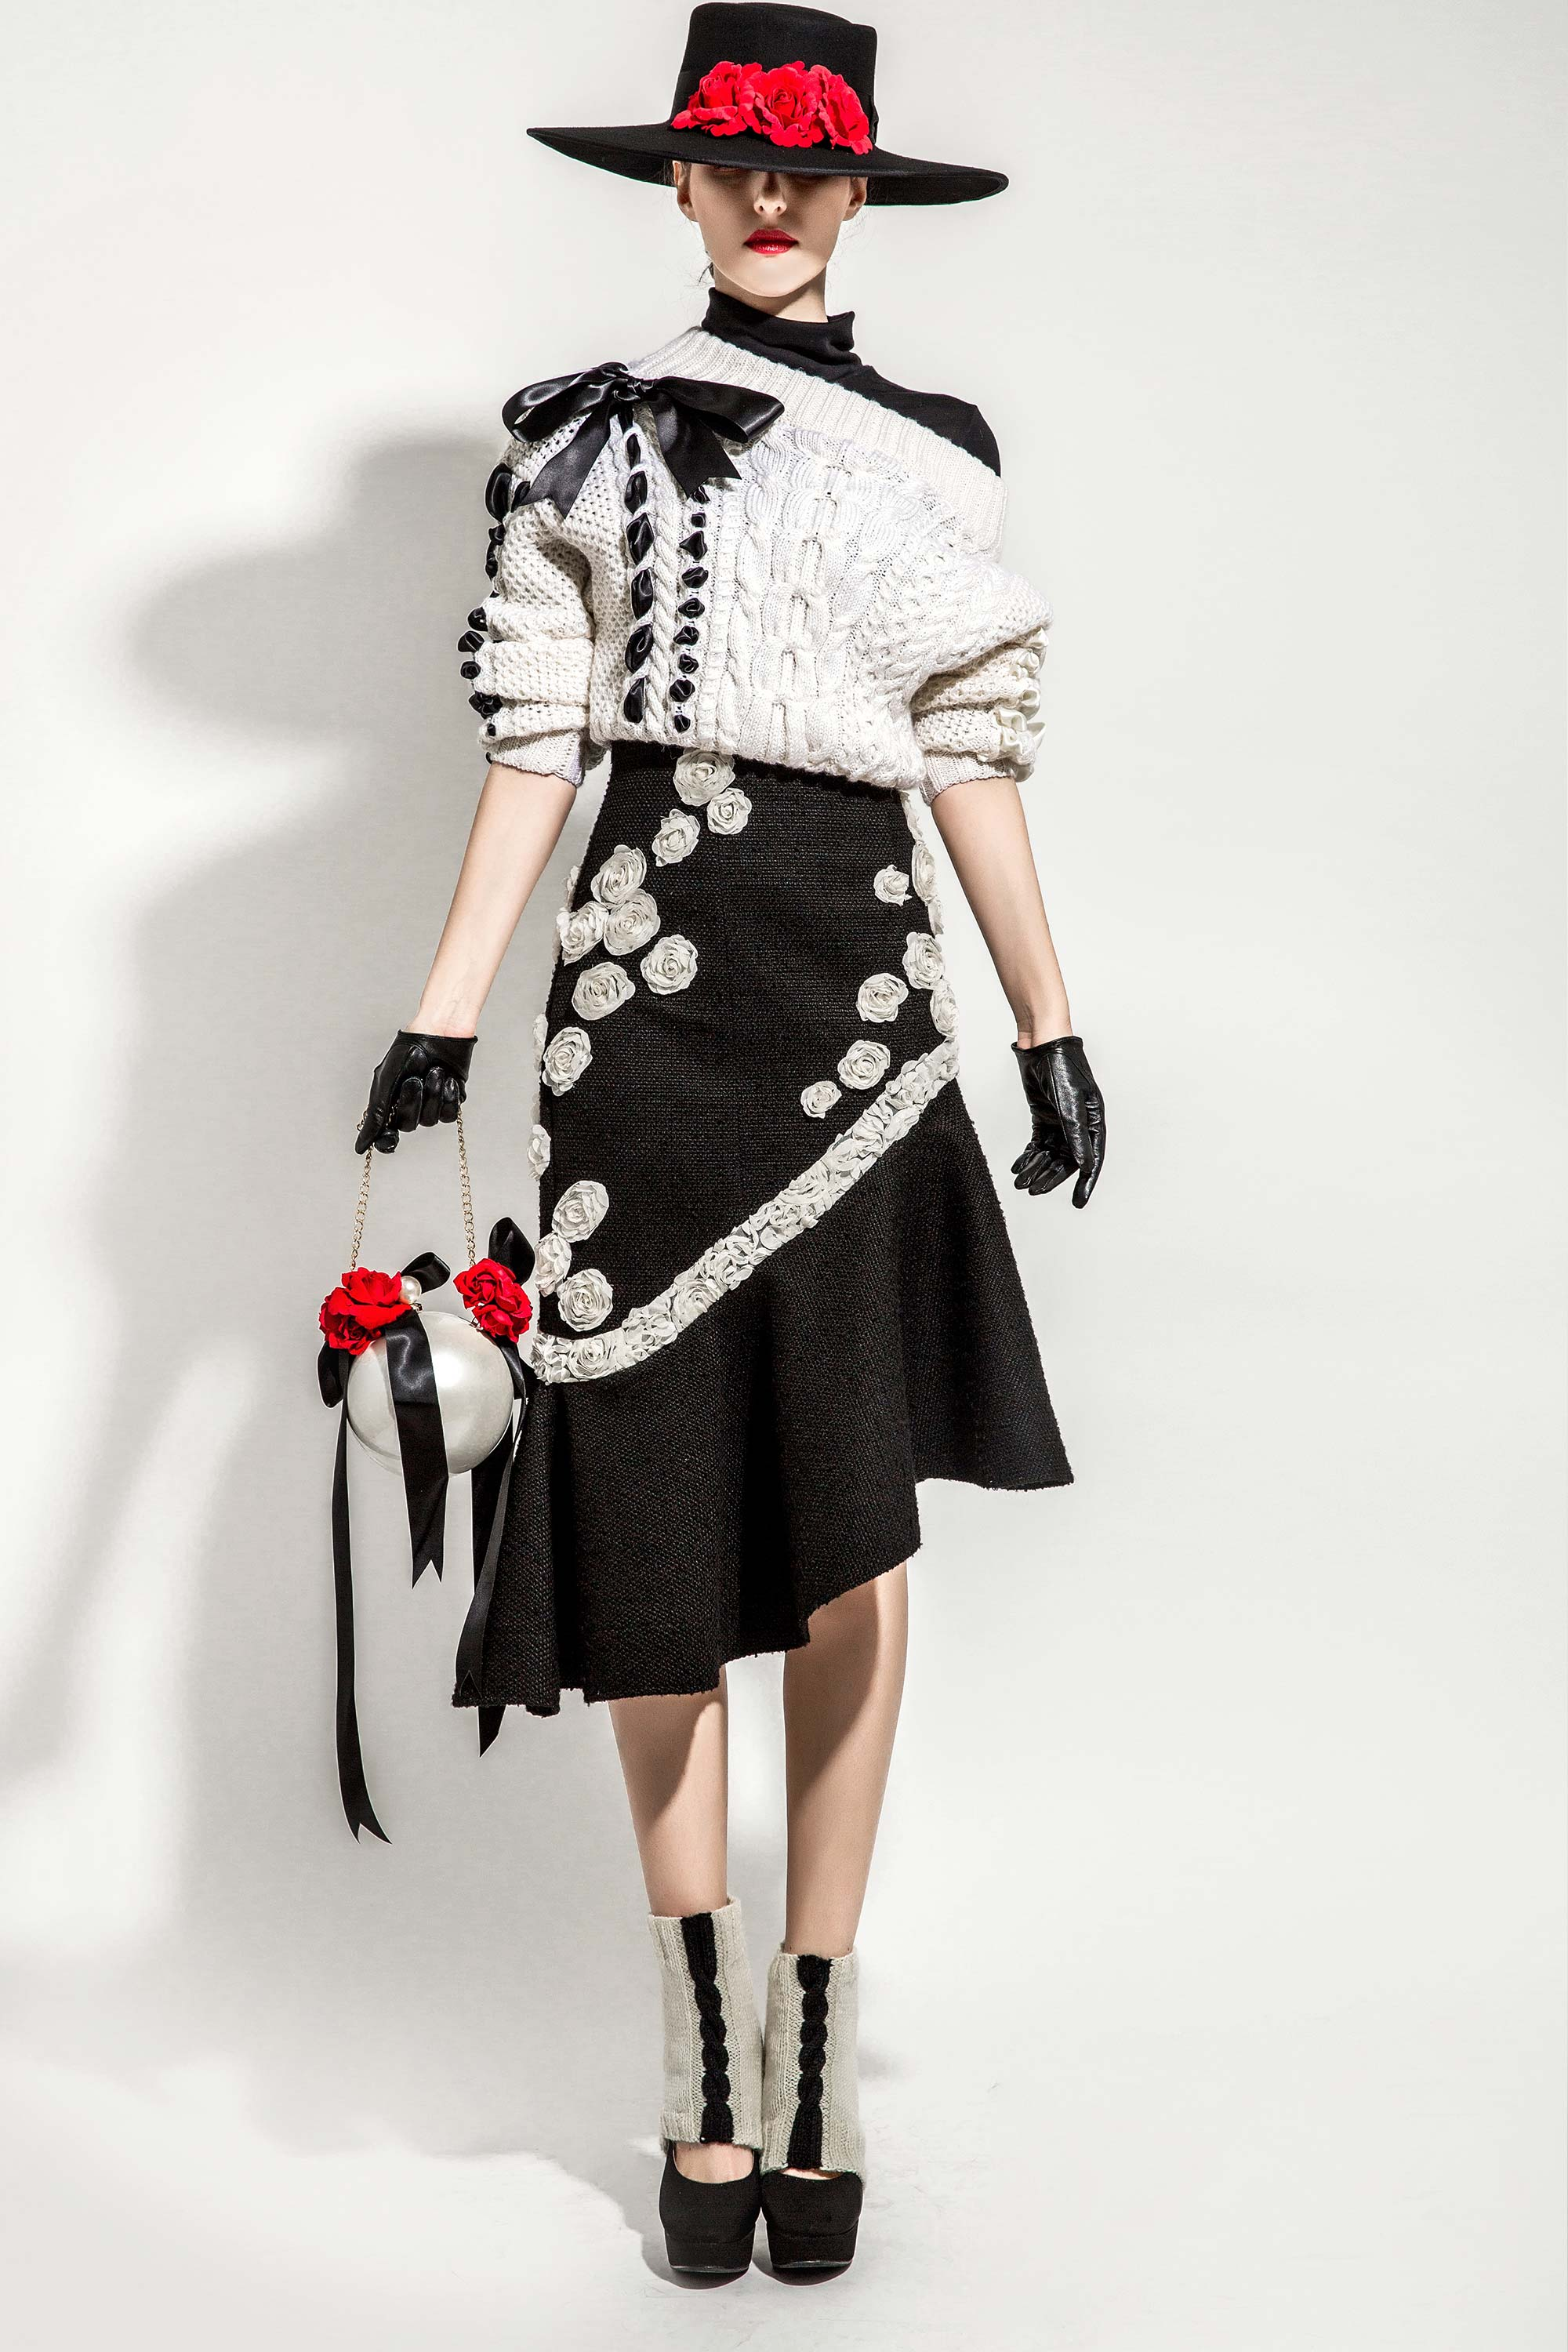 Woven Ribbon Sweater with 3D Rosettes Embroidered Wool Knitted Mermaid Skirt, Black/Cream